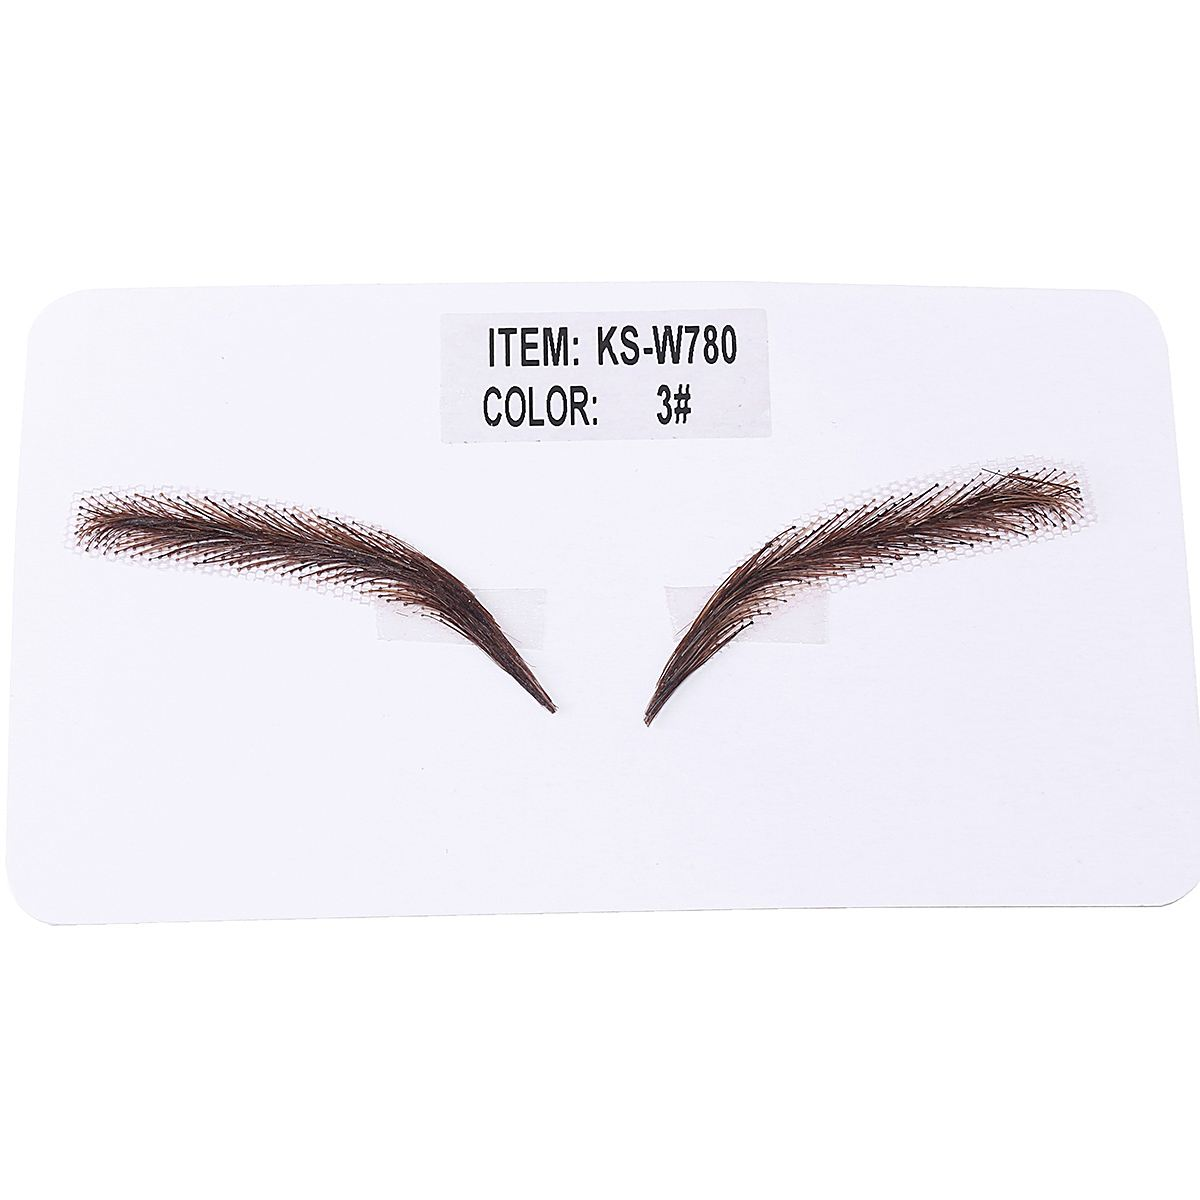 Image 4 - Handmade Human Hair False Eyebrows Lace Base For Women For Party Wedding Cosplay Star Fake Eyebrow Synthetic Eyebrows-in Eyebrow Enhancers from Beauty & Health